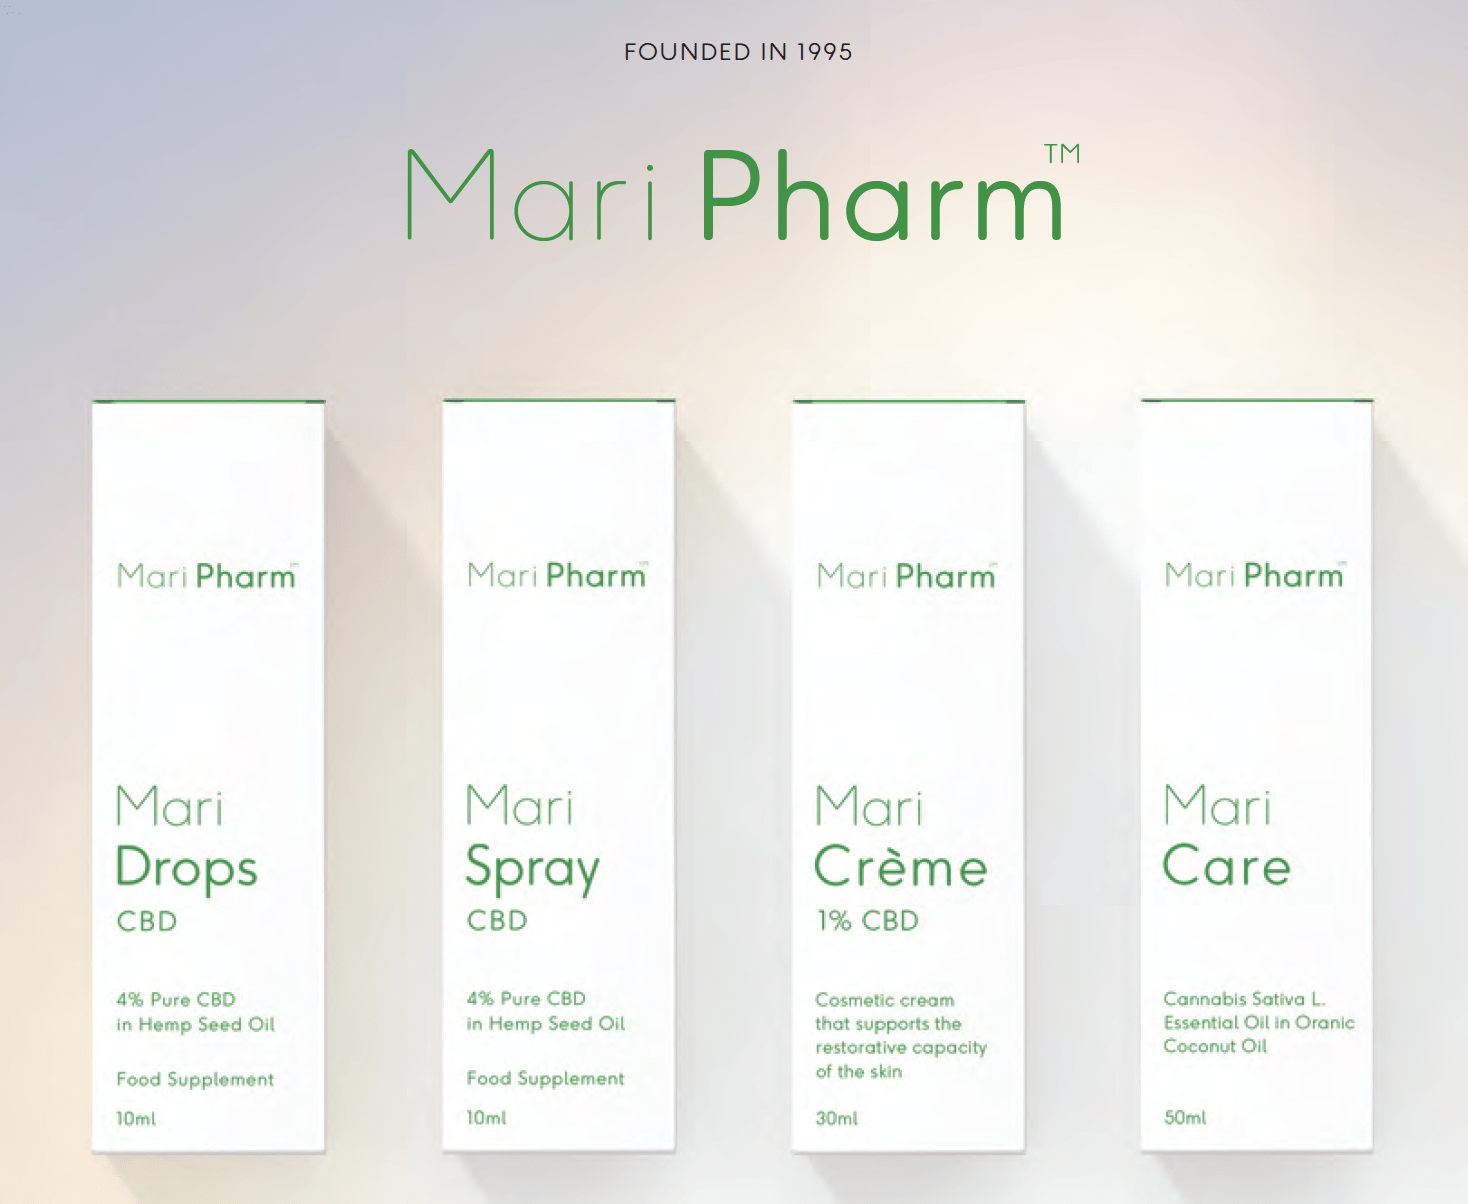 MariPharm Coupon Codes - Discounts - Promos - Save On Cannabis CBD